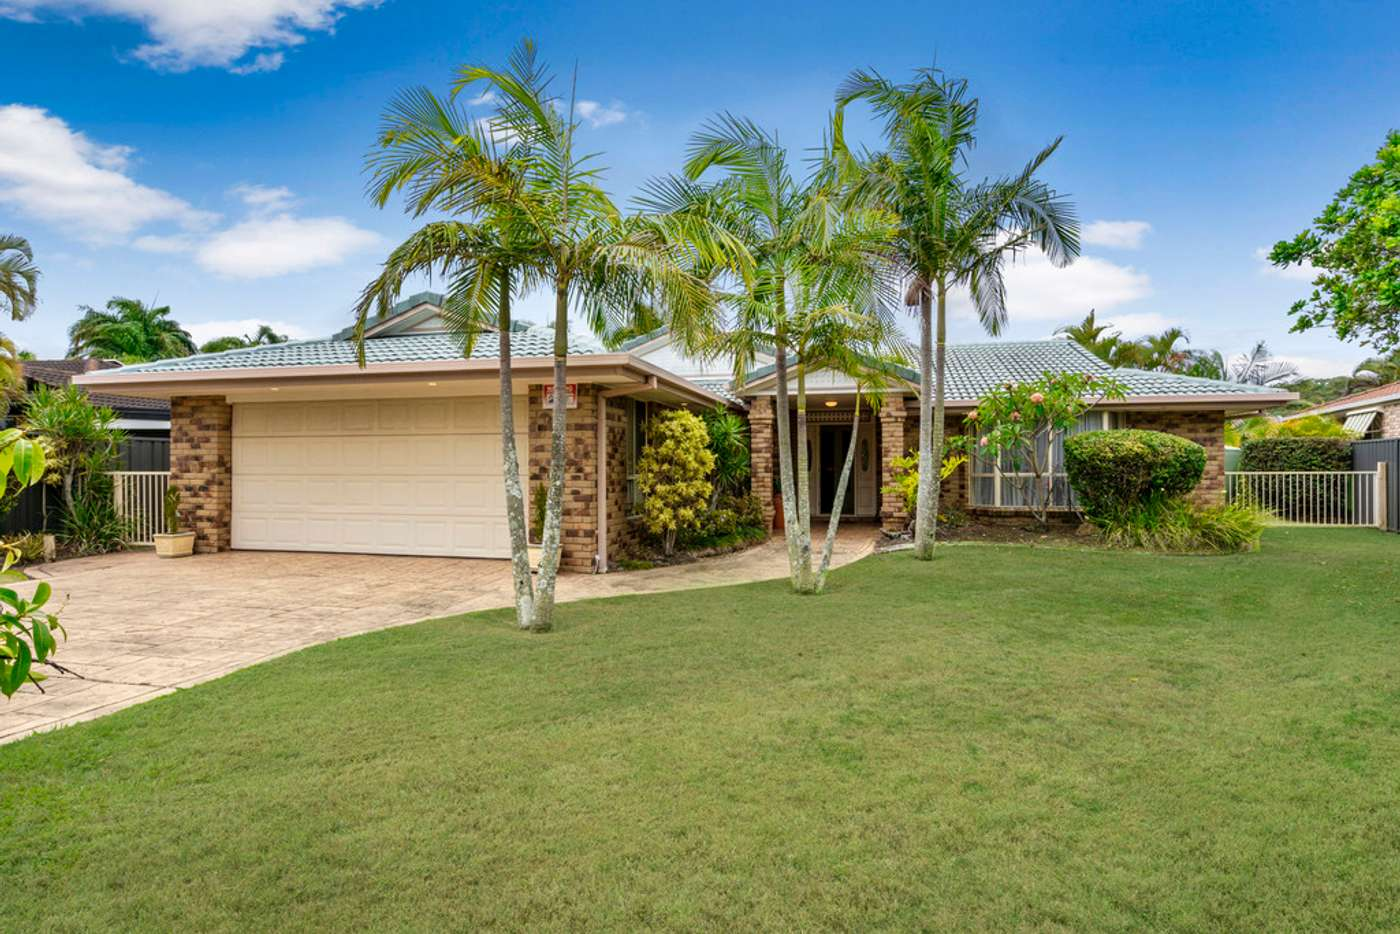 Main view of Homely house listing, 13 Raven Parade, Burleigh Waters QLD 4220